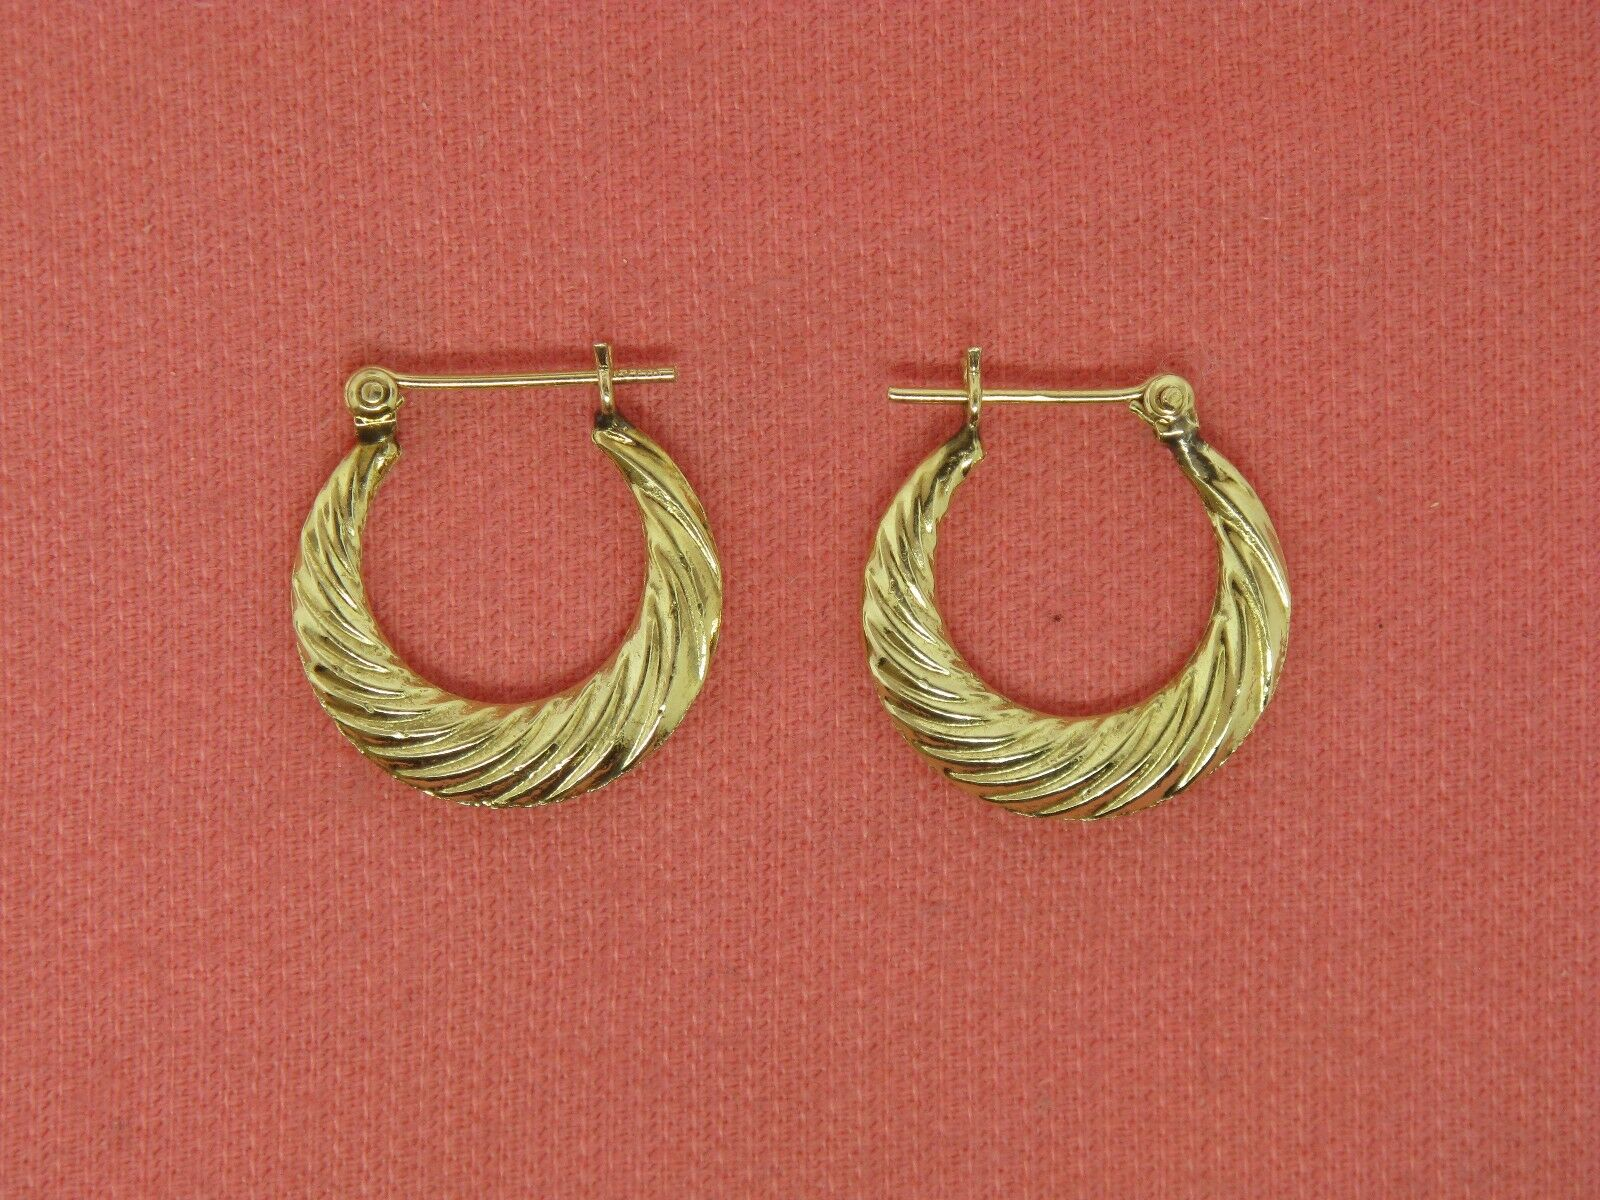 14K Yellow gold Fancy Hoop Earrings (Estate Jewelry)